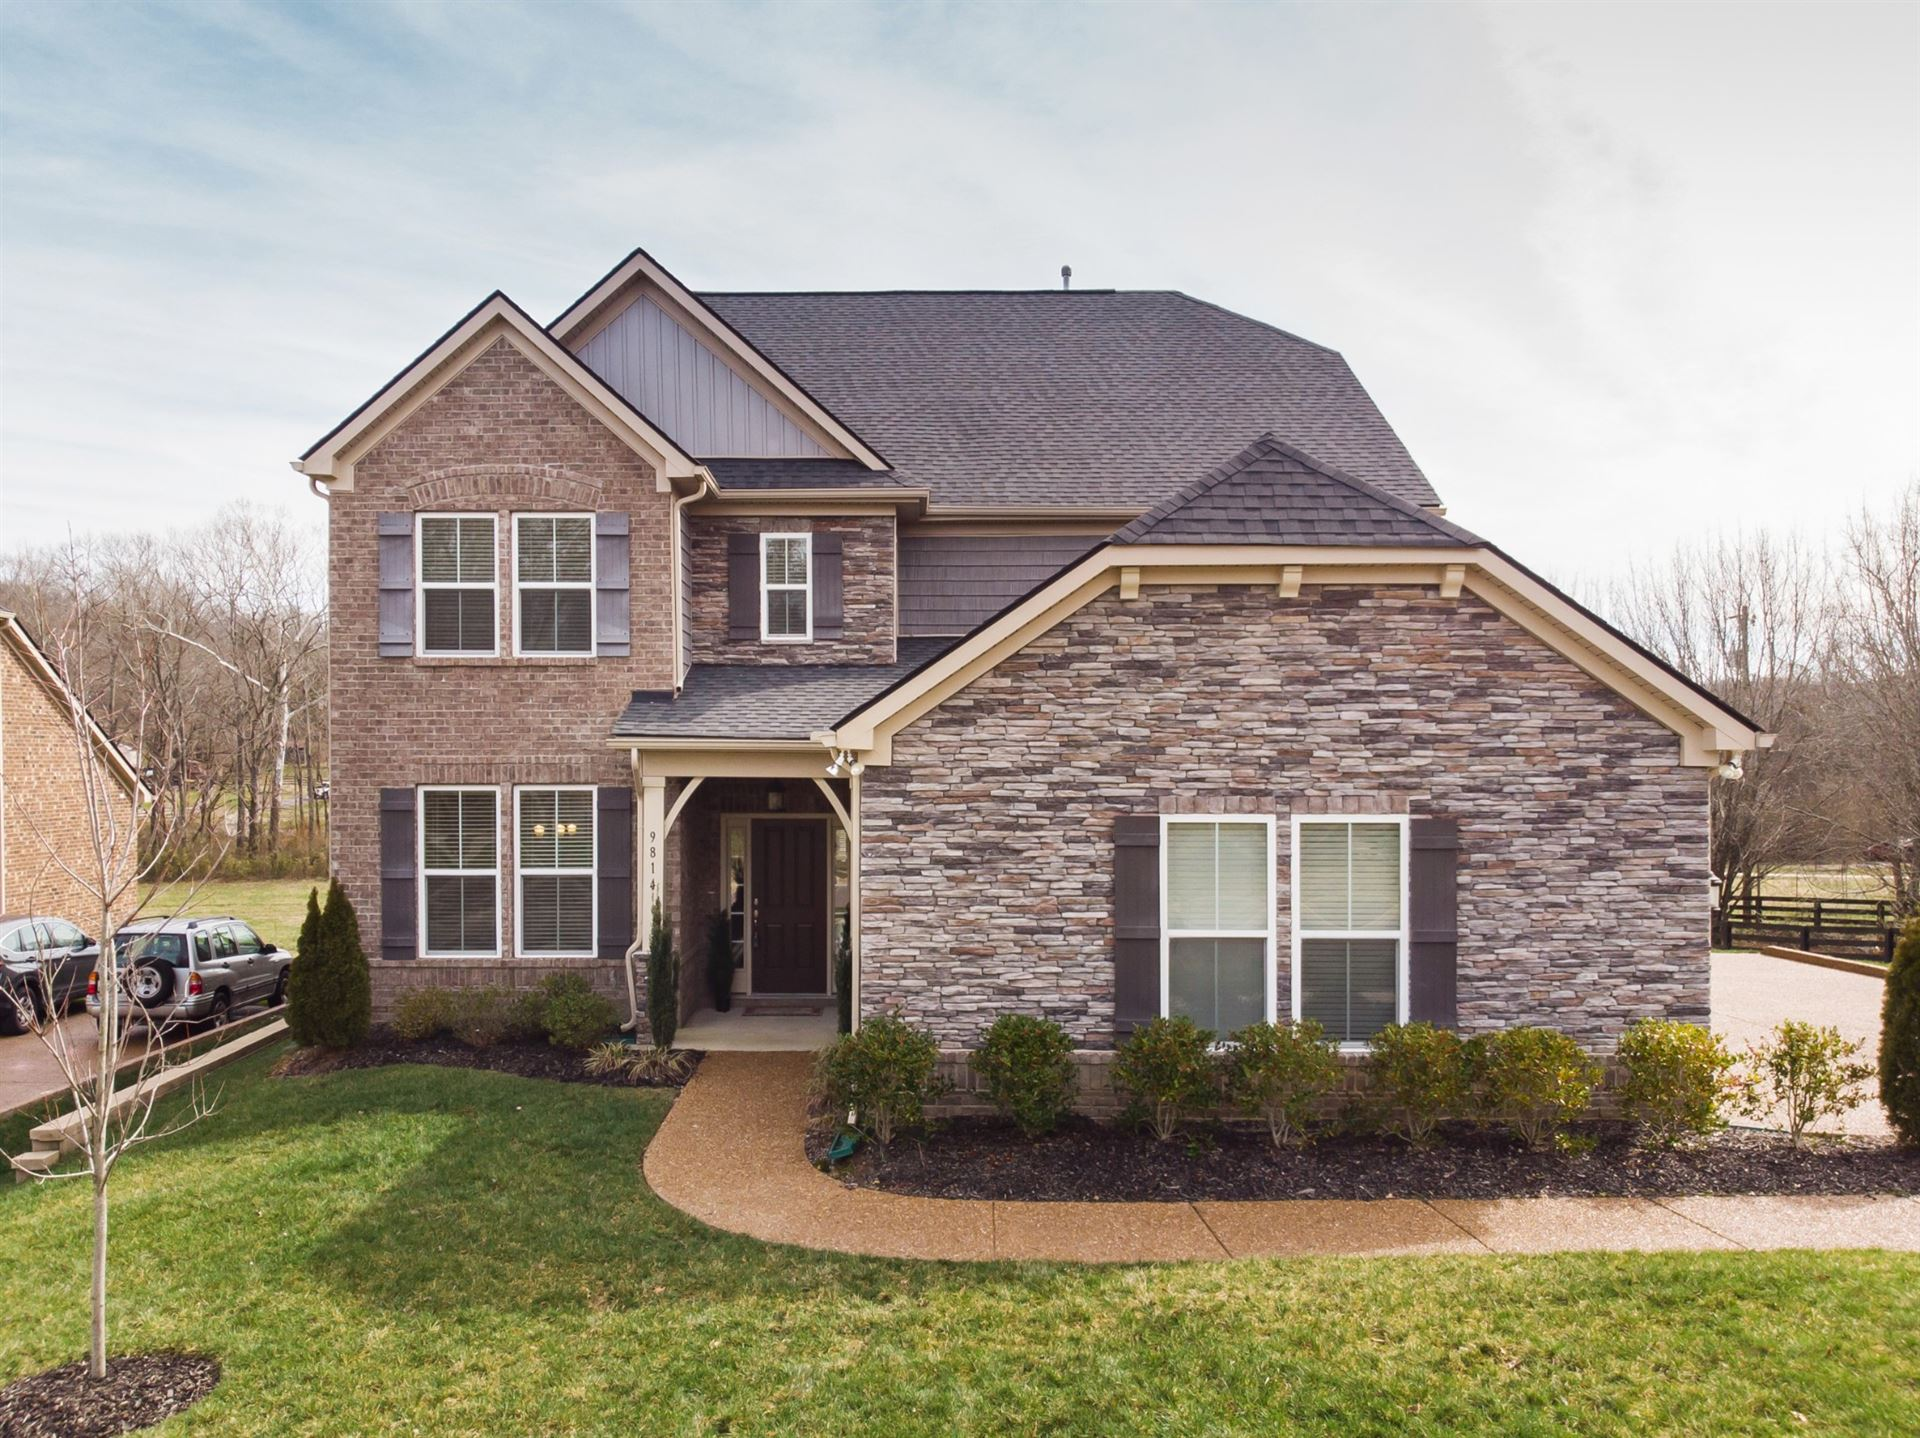 Photo of 9814 Glenmore Ln, Brentwood, TN 37027 (MLS # 2119669)